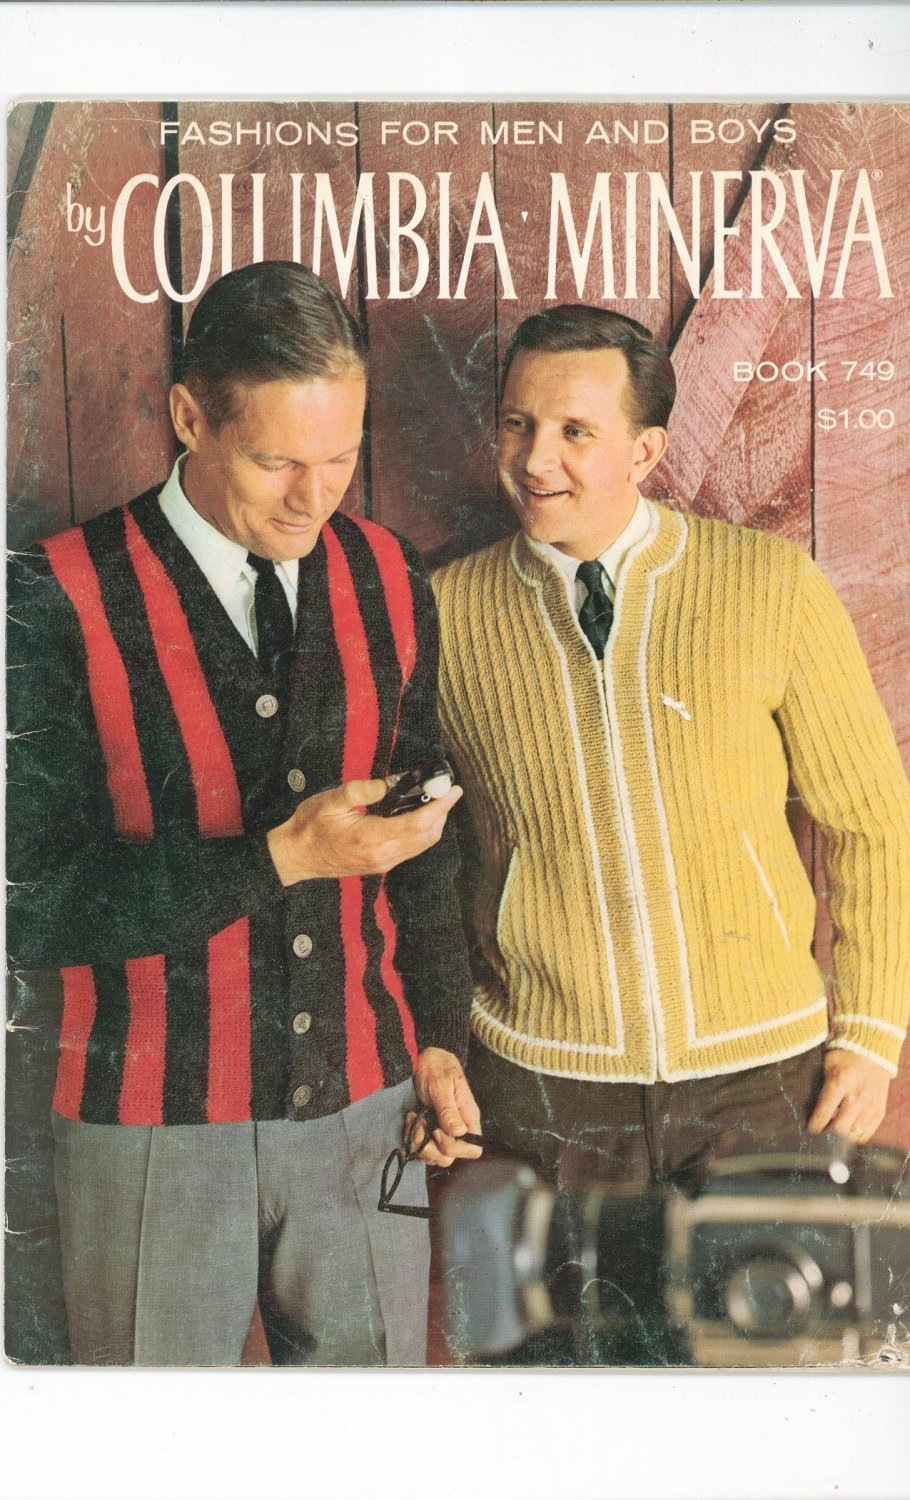 Vintage Fashions For Men And Boys By Columbia Minerva Book 749